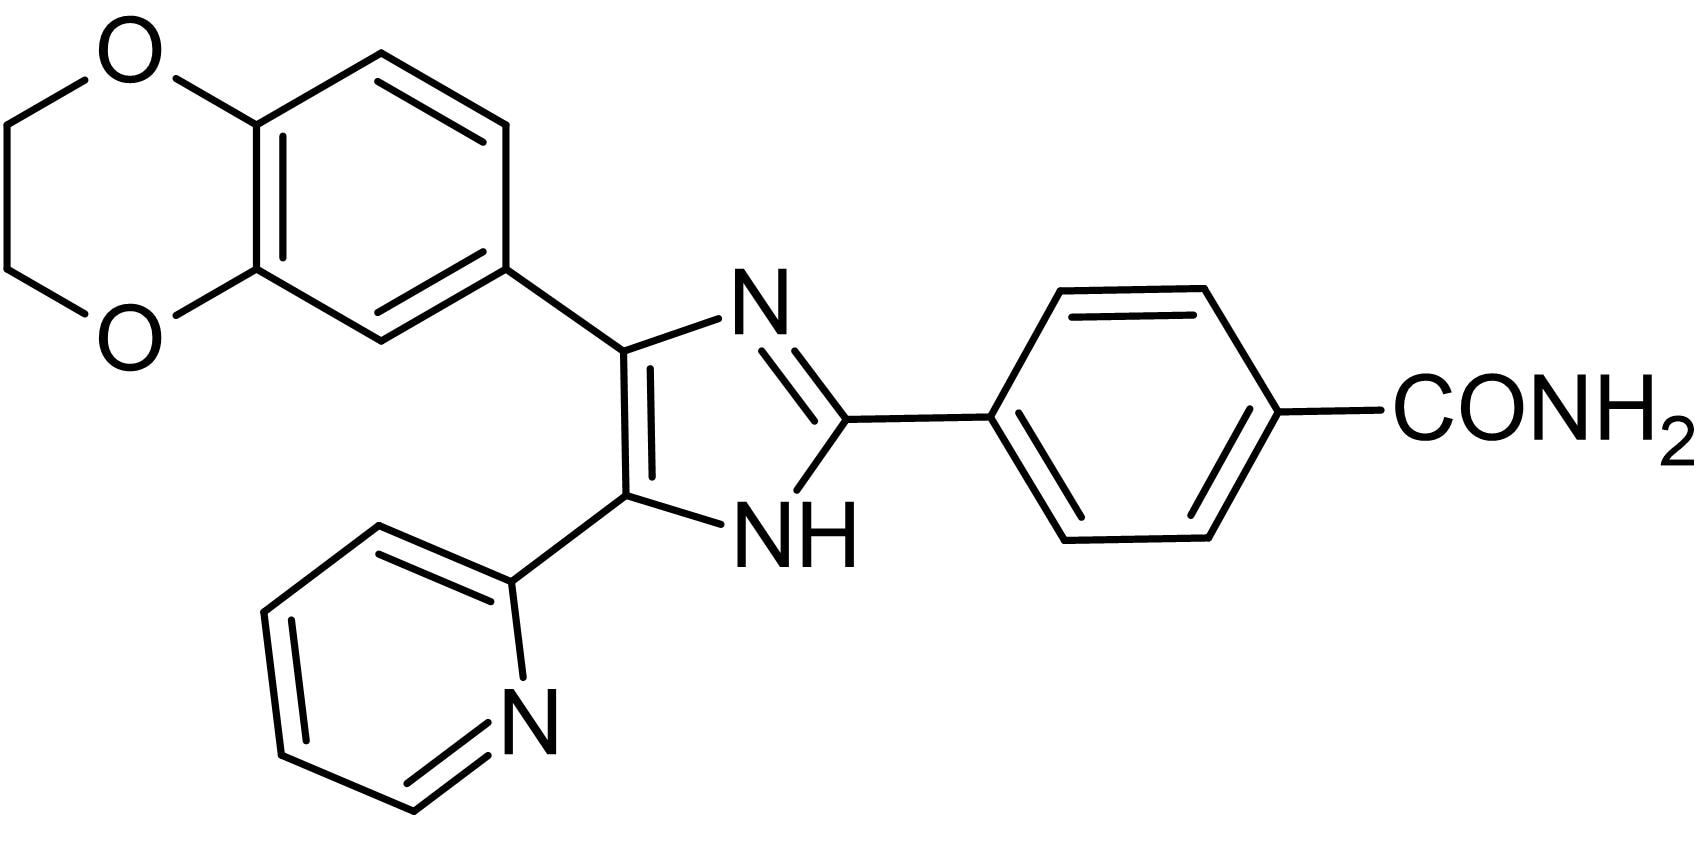 Chemical Structure - D4476, CK1 inhibitor (ab120220)